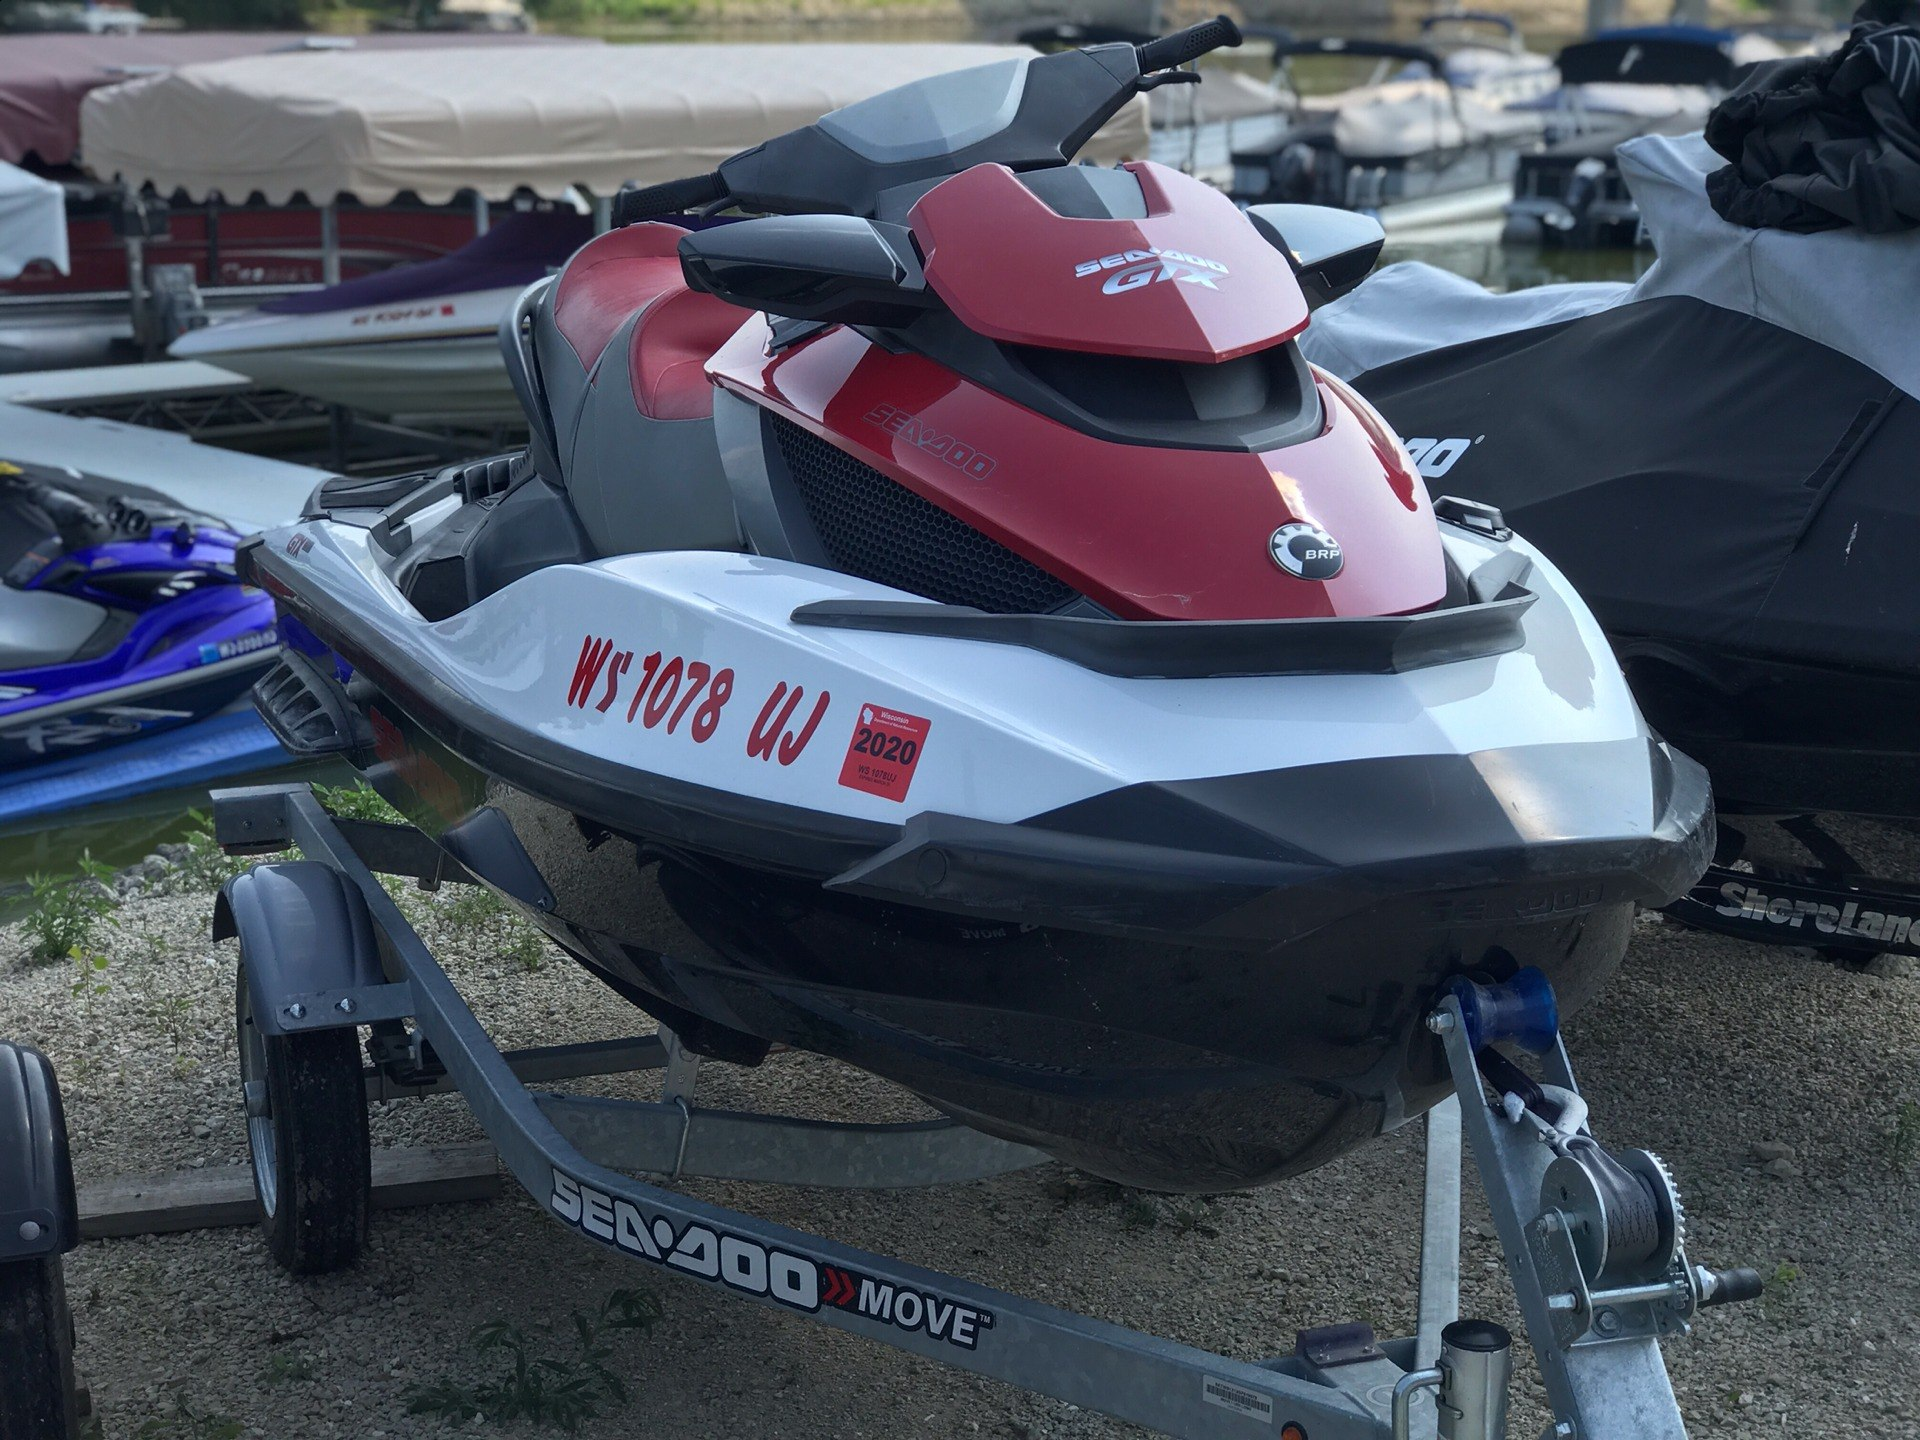 2011 Sea-Doo GTX iS™ 215 in Edgerton, Wisconsin - Photo 2